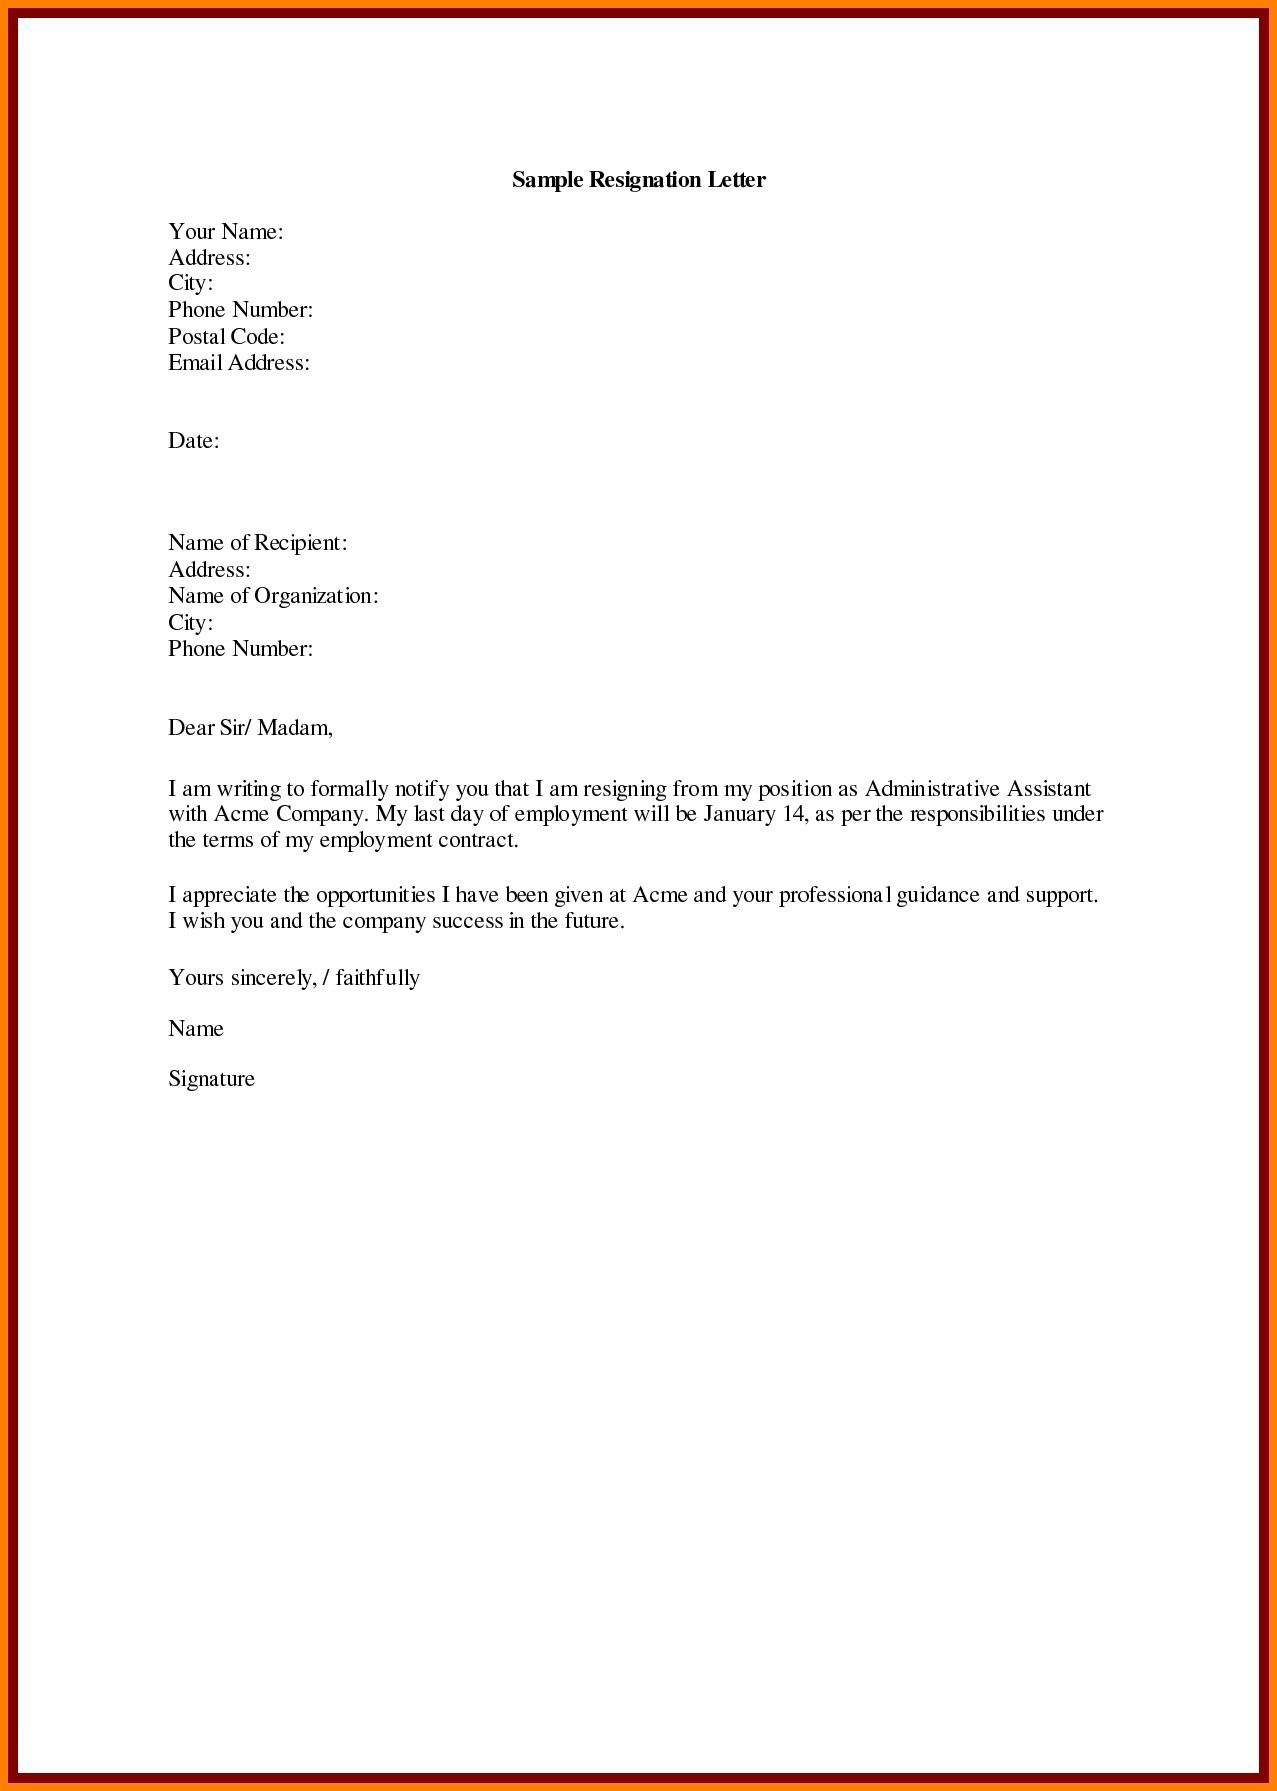 copy of resignation letter